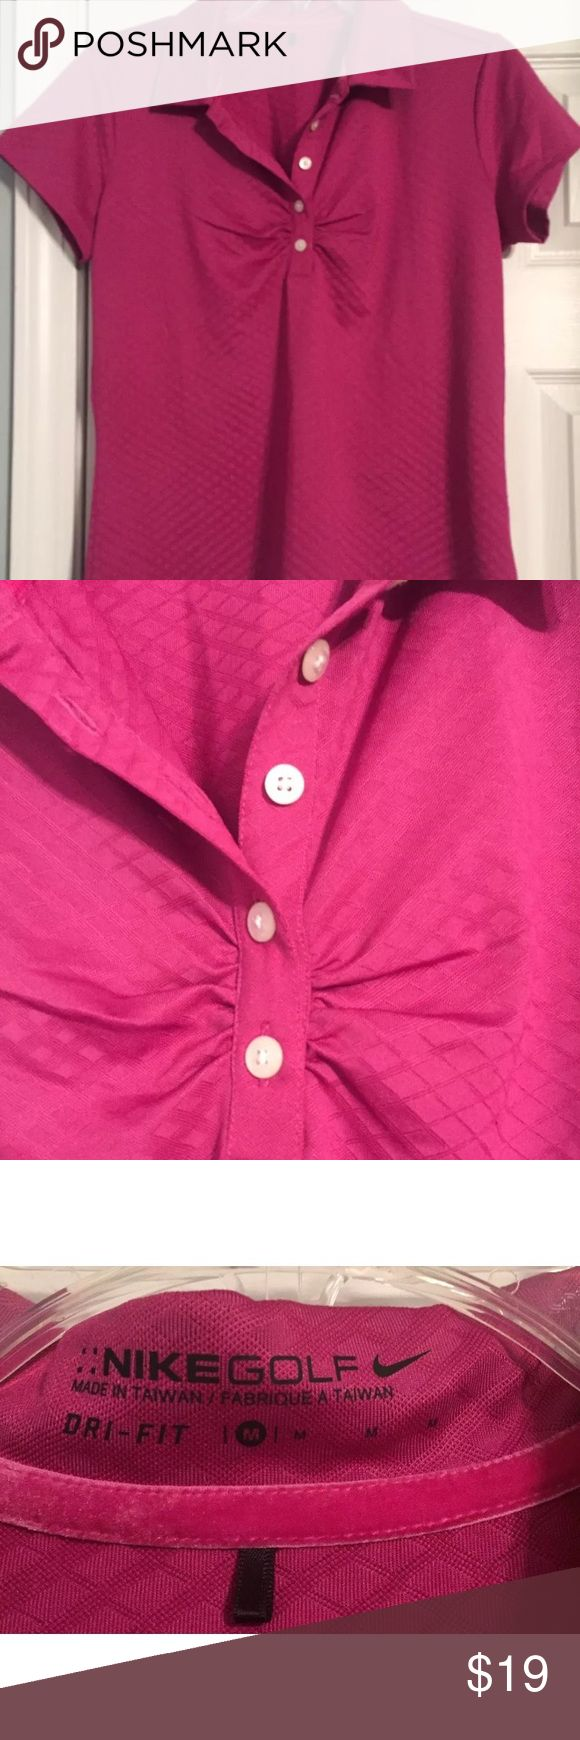 Nike Women's Golf Dri-Fit Diamond Polo Shirt Med The Nike Women's Golf Polo Shirt   94% Dri-Fit polyester 4% spandex 5-button placket with Nike printed on buttons Diamond Patterned fabric Fold over collar Ruching detail at bust and sleeves Hot Pink Color Nike Dri-Fit fabric which wicks away moisture and keeps you dry Machine Washable Great Condition No Smoke/Animals Nike Tops Tees - Short Sleeve